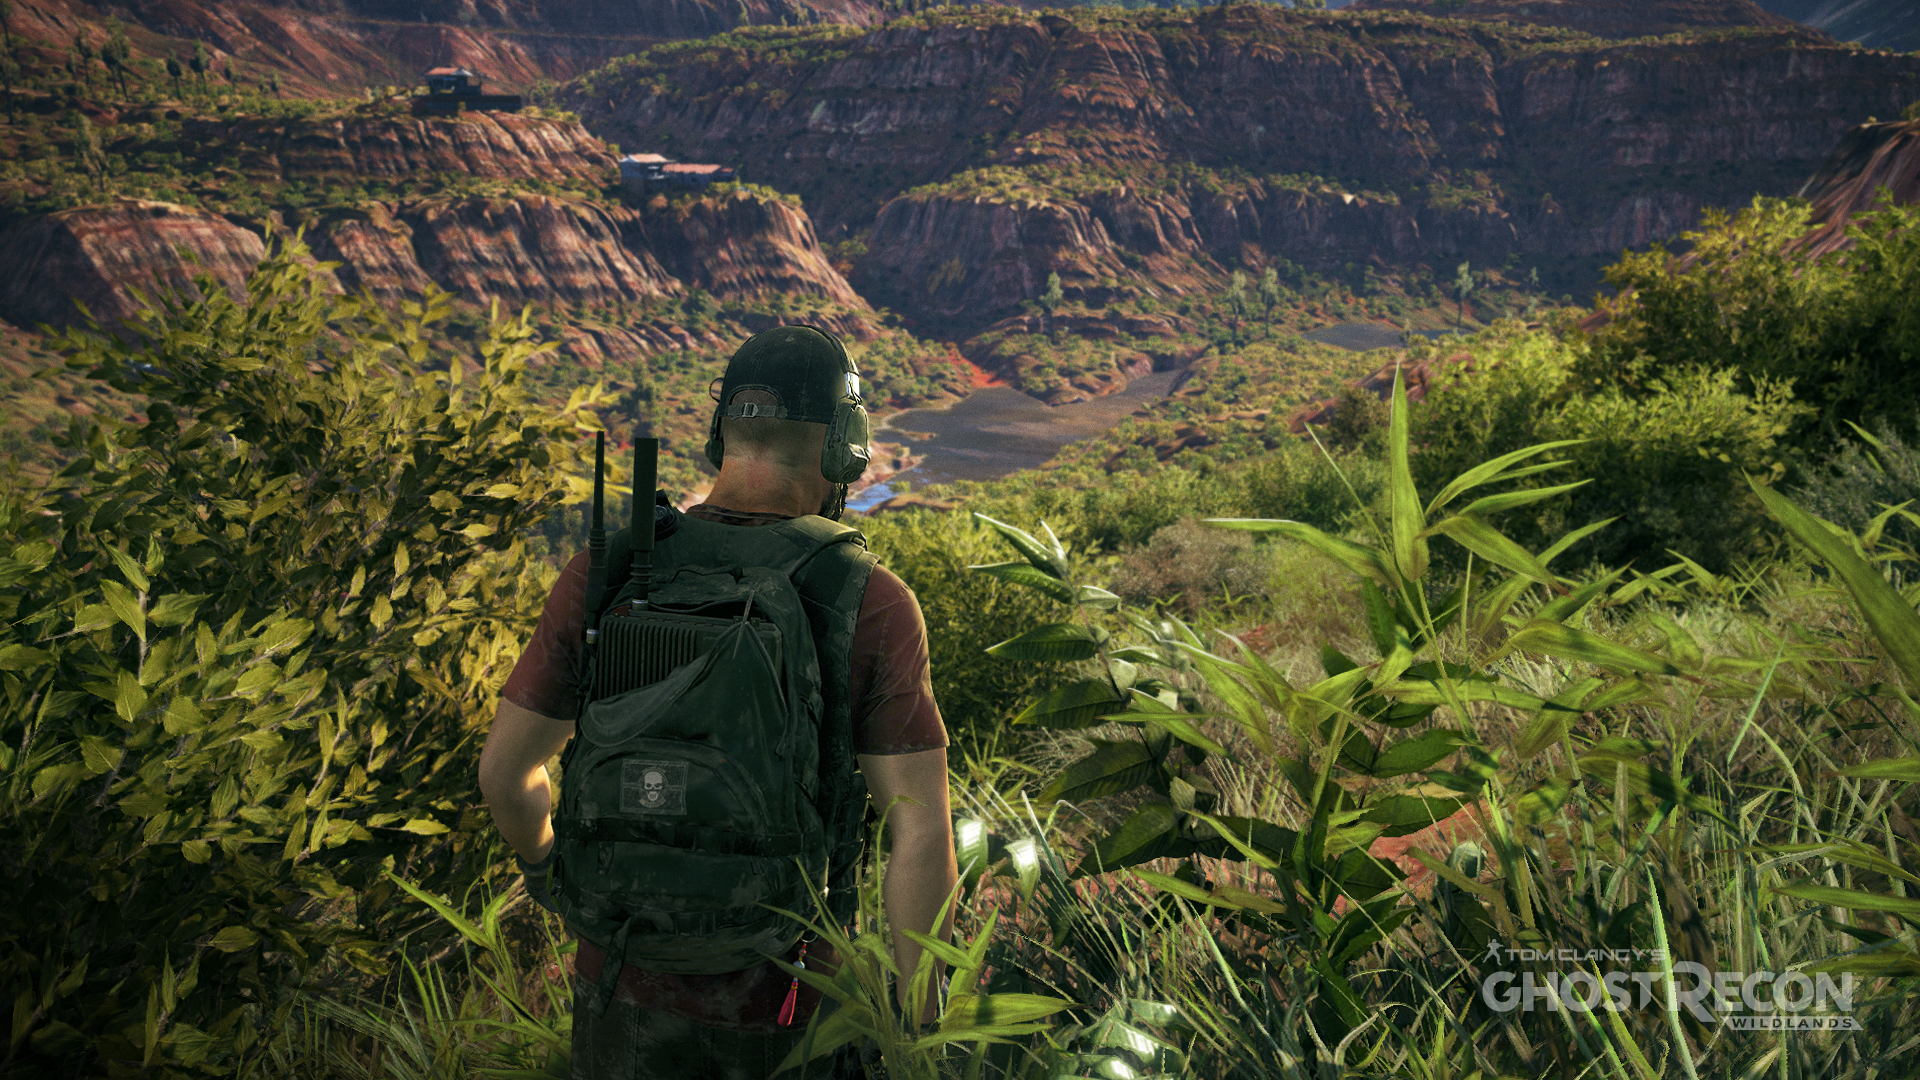 Ghost Recon Wildlands Wallpaper 48573 1920x1080px